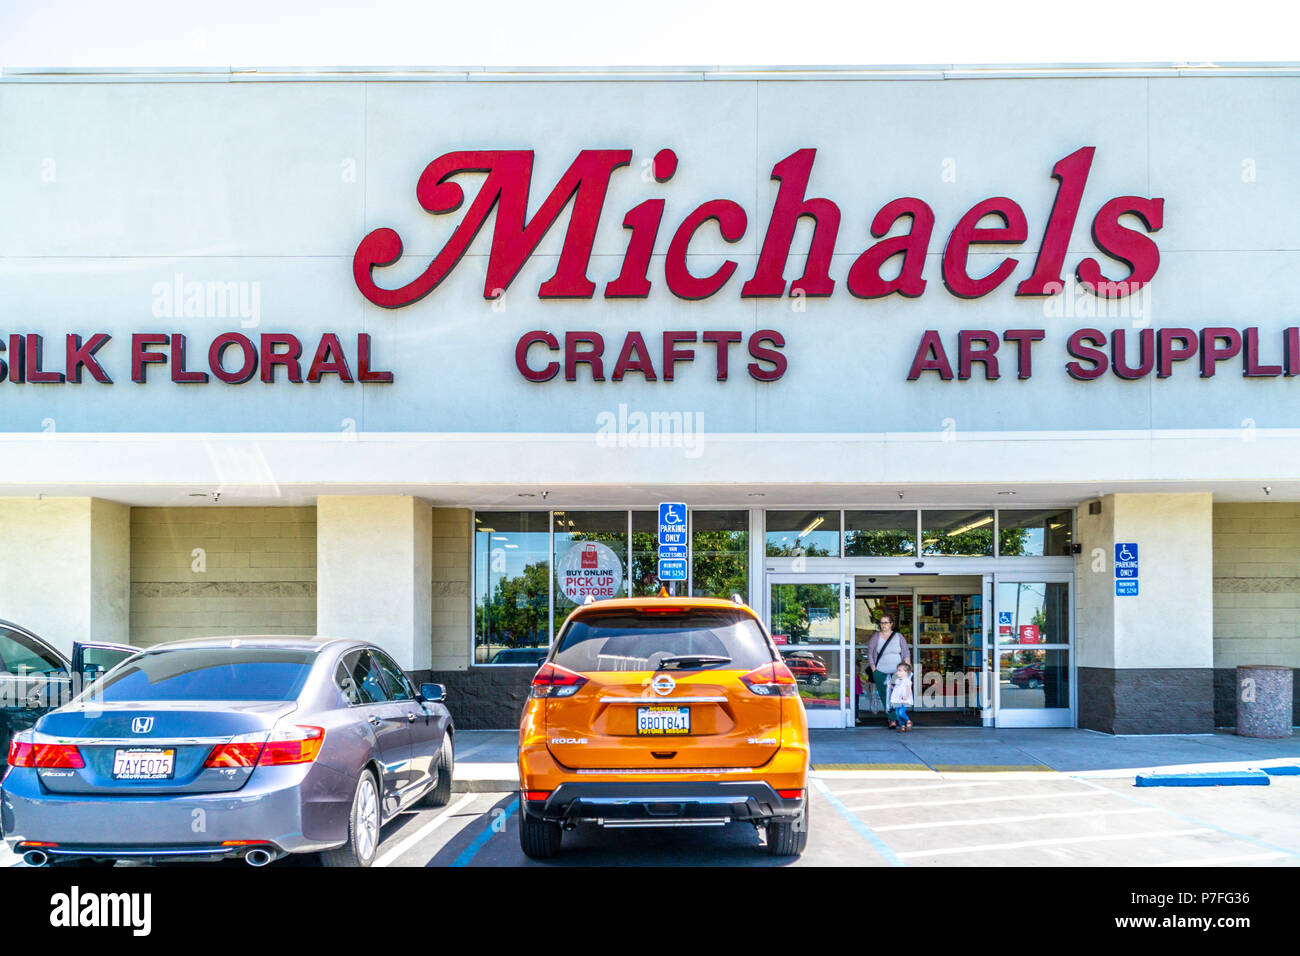 The Michaels Arts And Craft Store In Modesto California Usa Stock